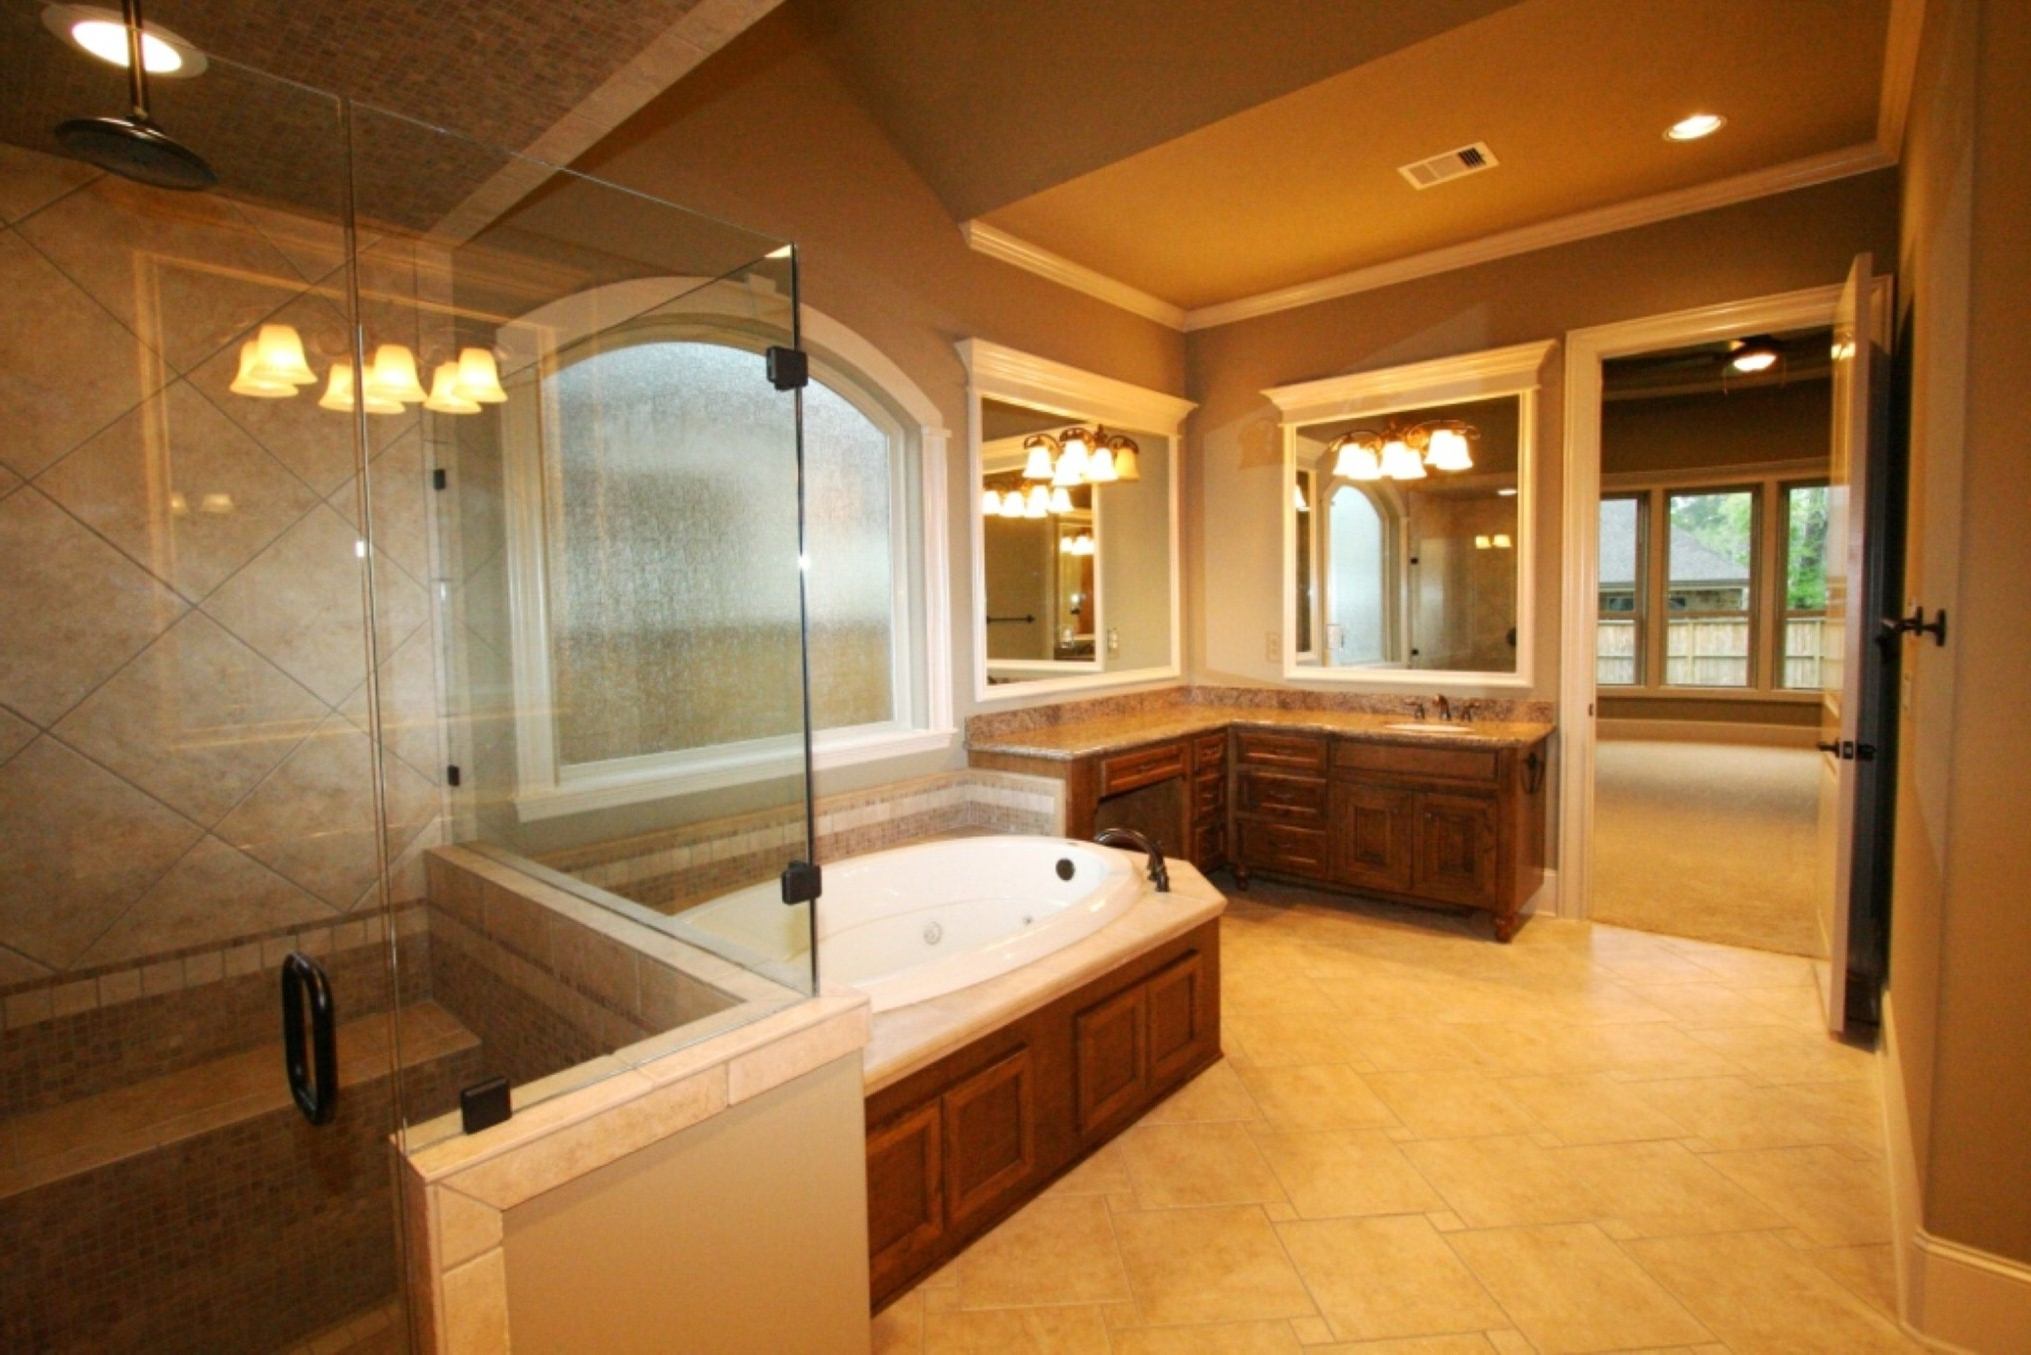 neat-inspirational-oval-bathtub-and-glass-shower-door-design-feat-corner-vanity-idea-in-compact-master-bathroom